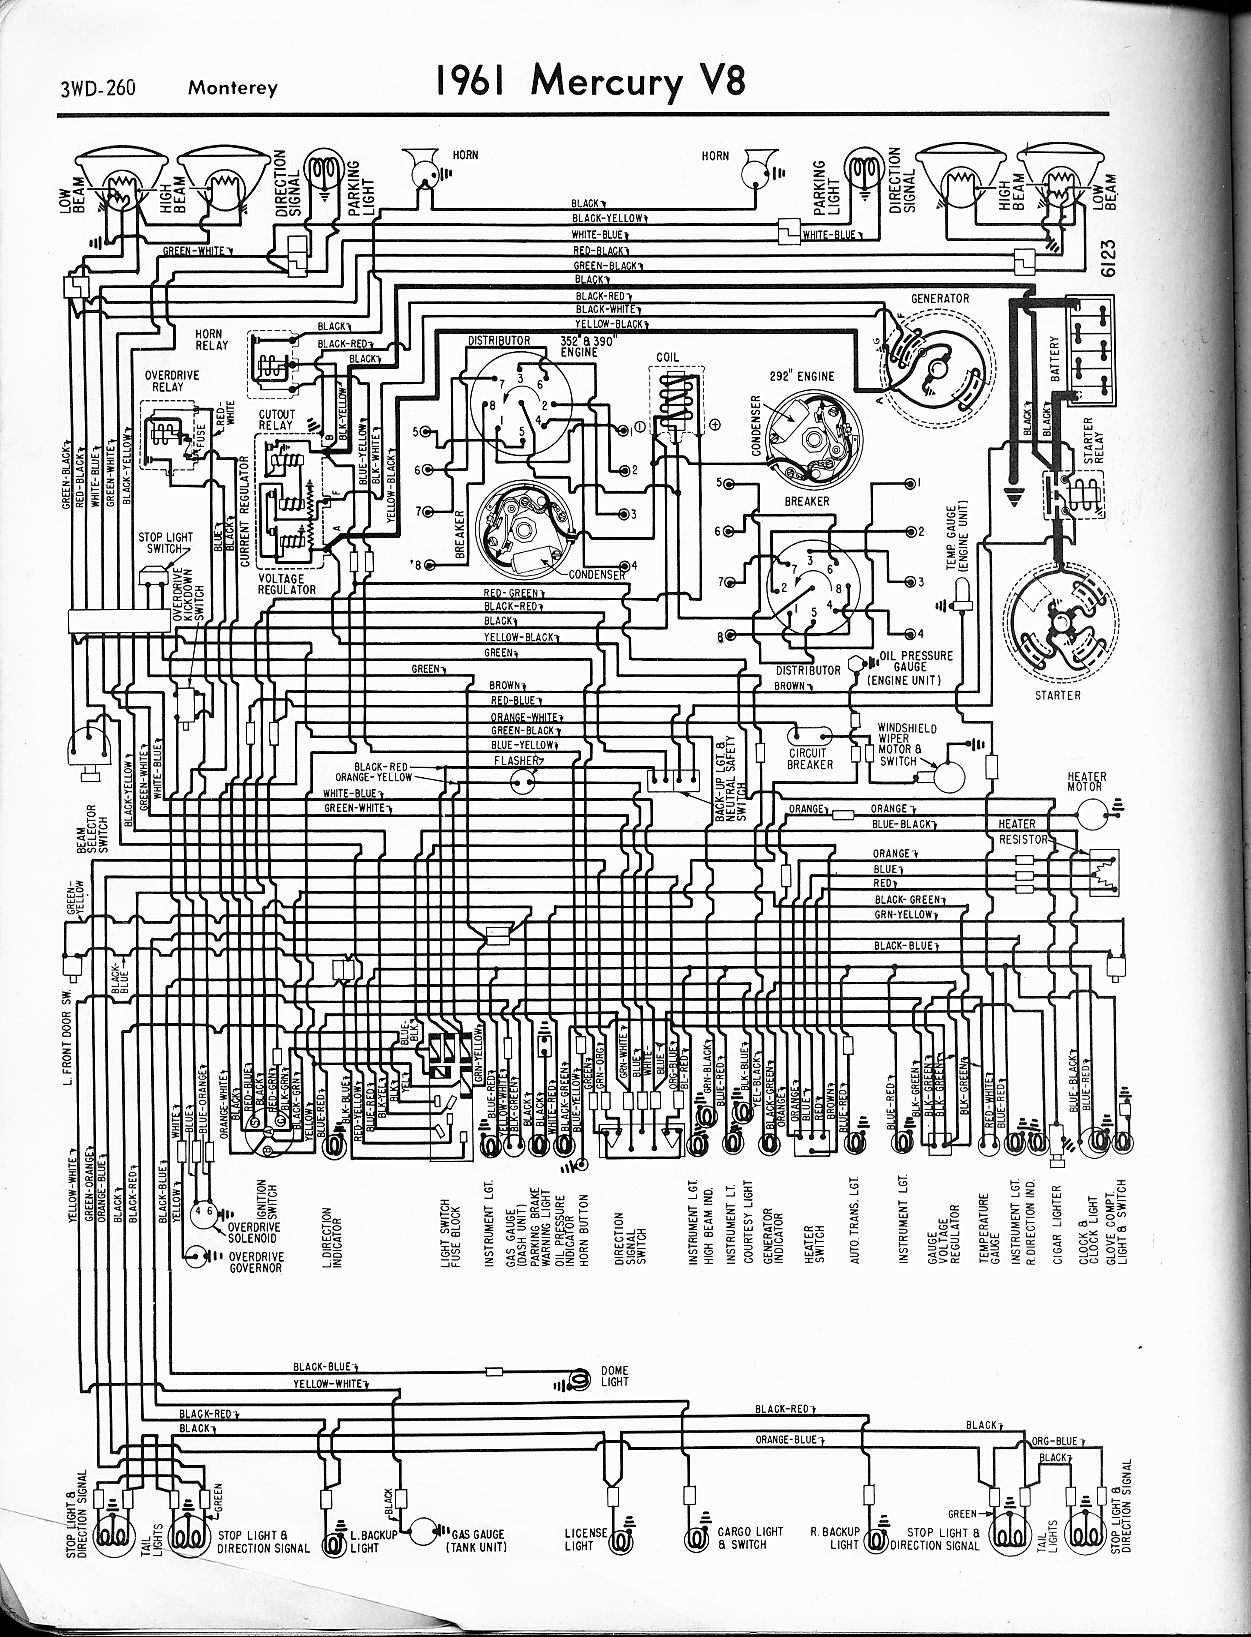 MWire5765 260 mercury wiring diagrams the old car manual project mercury wiring harness diagram at edmiracle.co